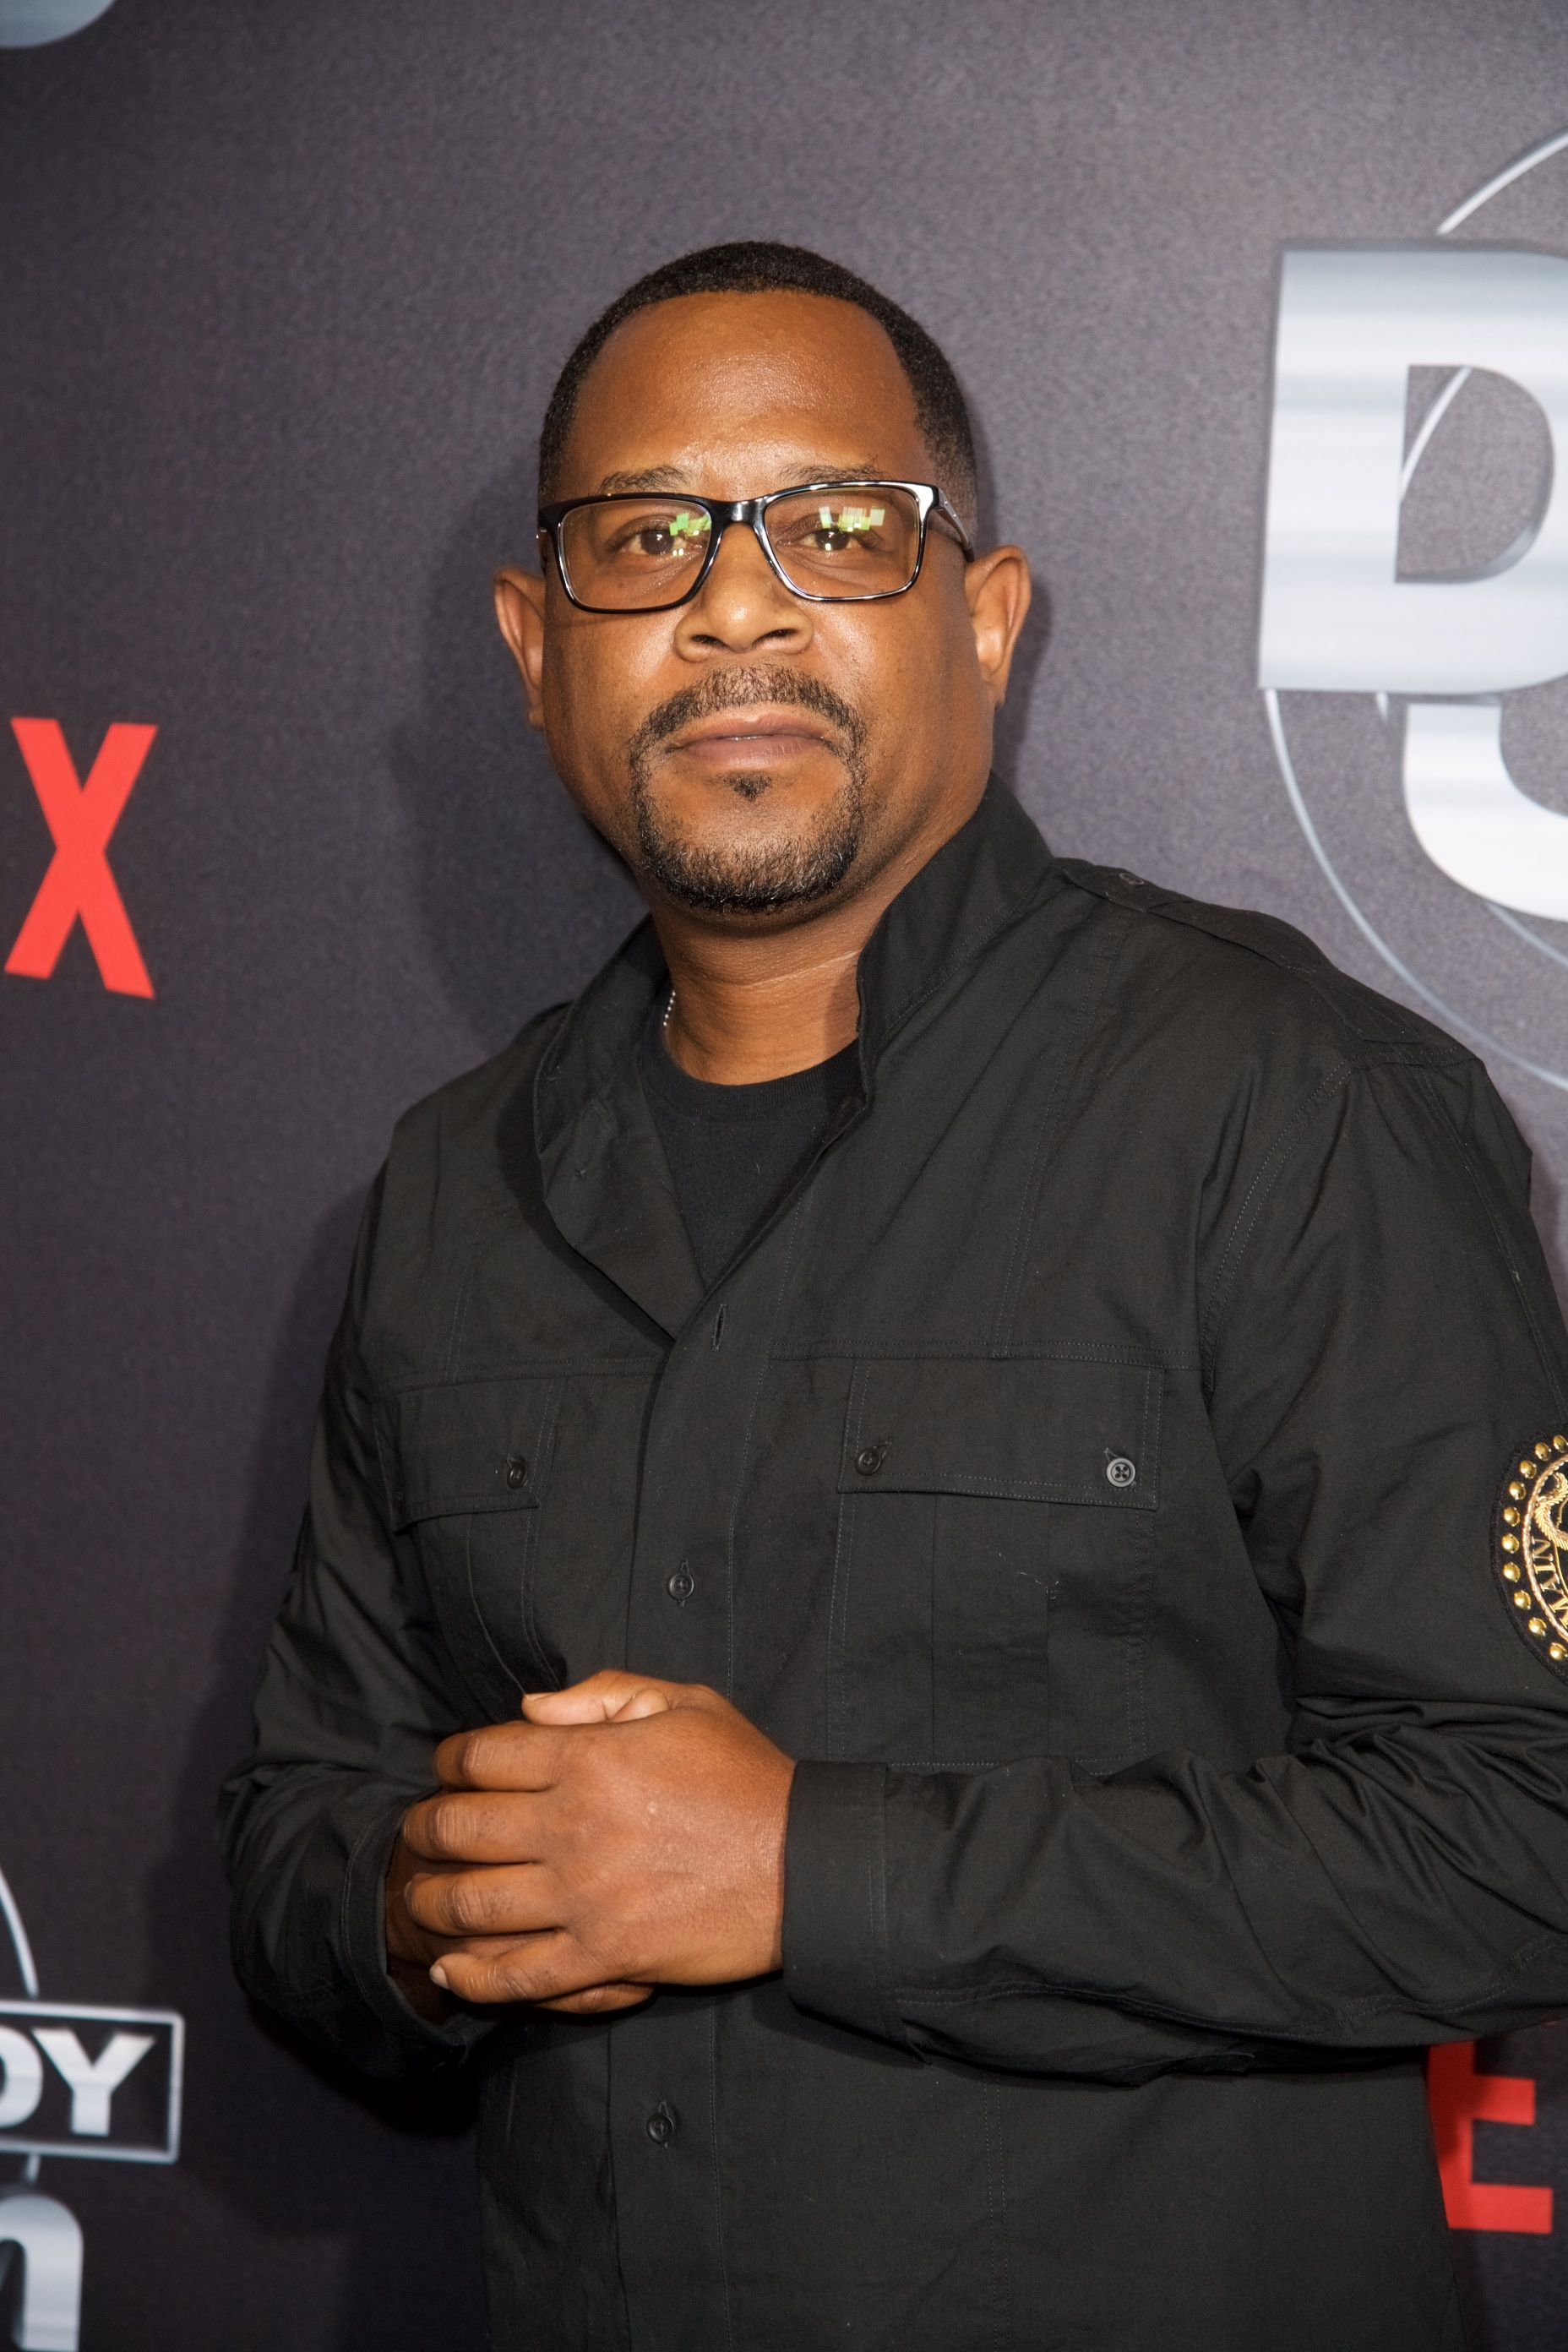 """Comedy actor Martin Lawrence at Netflix Presents Russell Simmons """"Def Comedy Jam 25"""" special event at The Beverly Hilton Hotel in September 2017. 